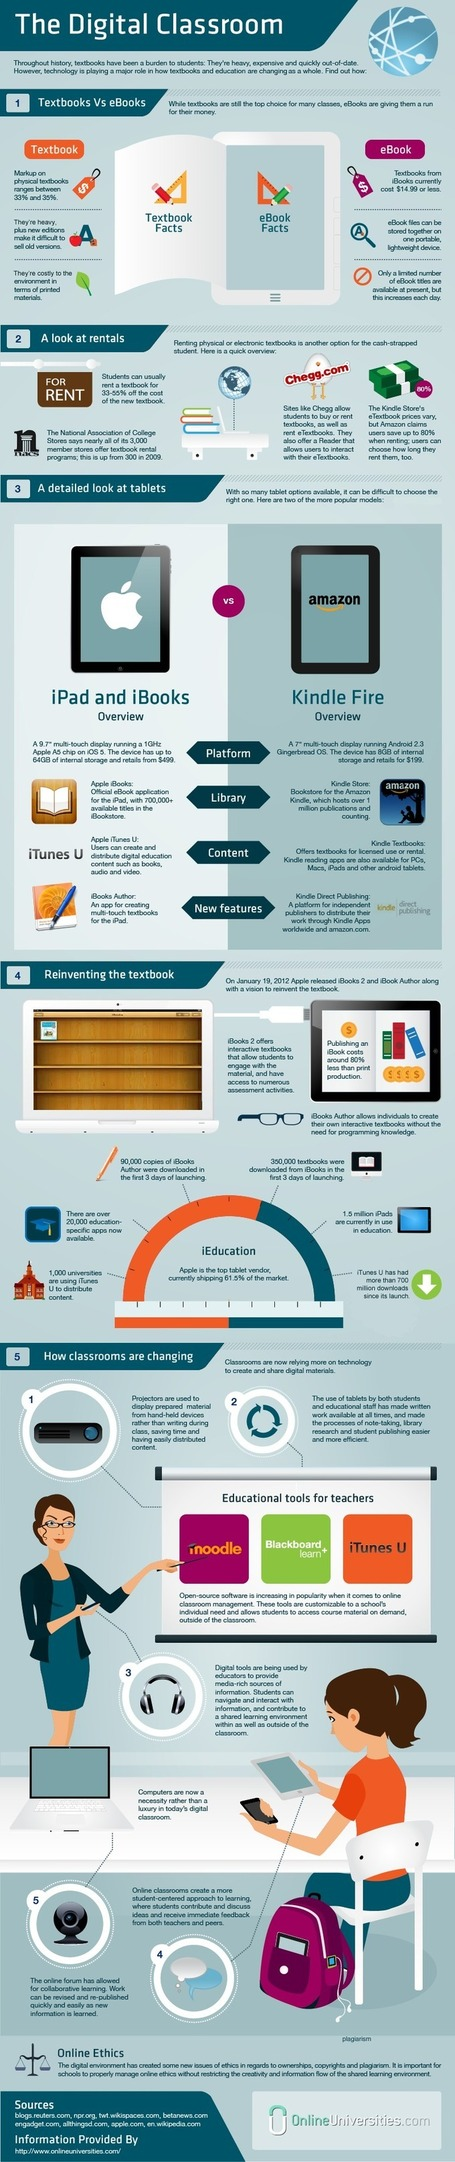 The Digital Classroom | Online Universities INFOGRAPHIC | ICT tips & tools, tracks & trails and... questioning them all ! | Scoop.it